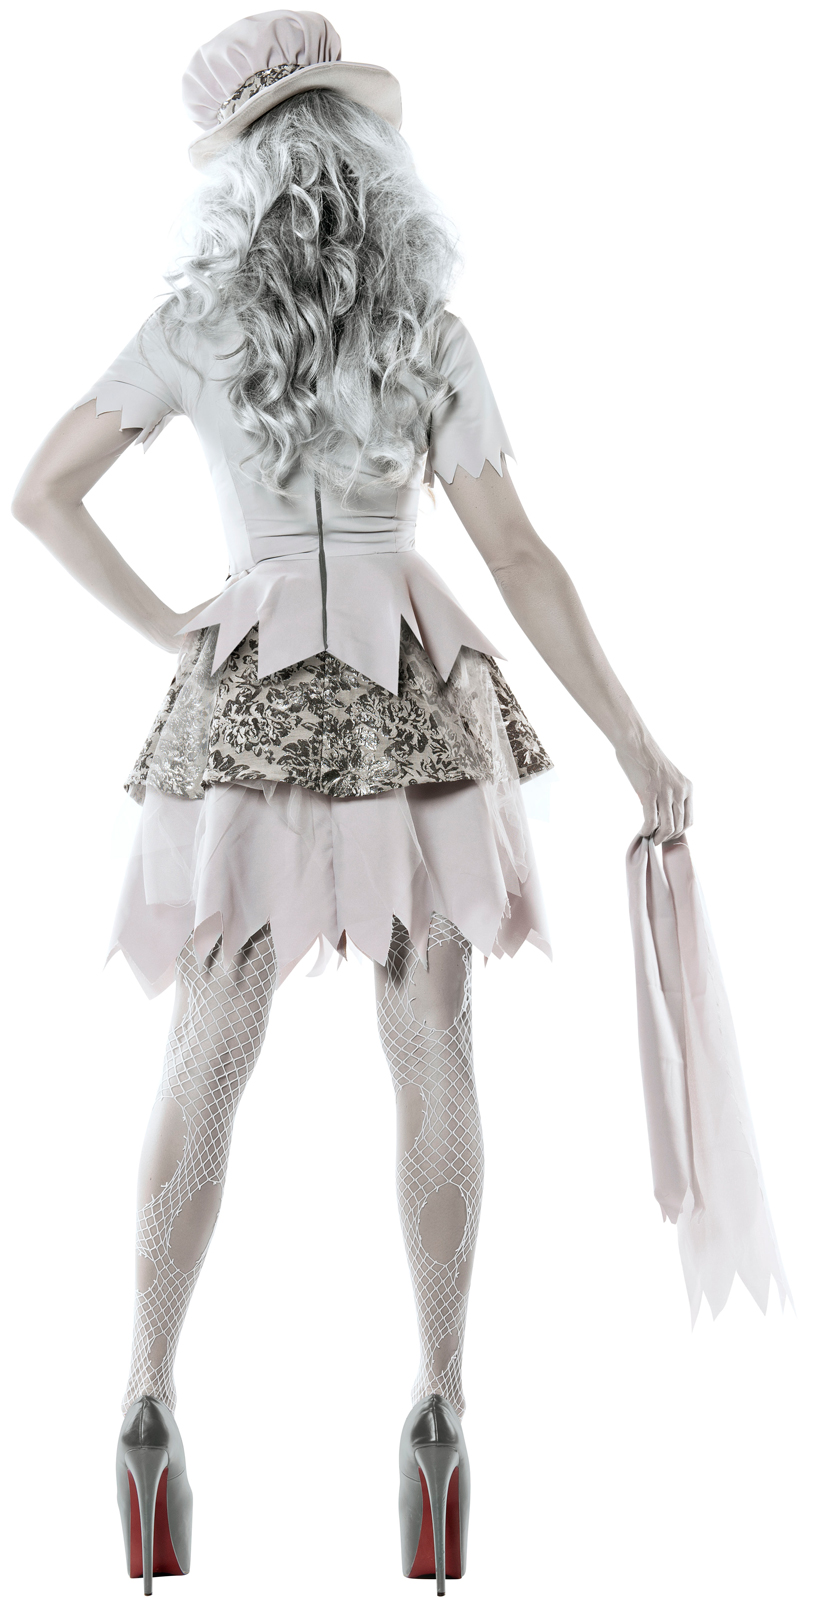 Victorian Ghost Bride Costume - HalloweenCostumes.co.uk